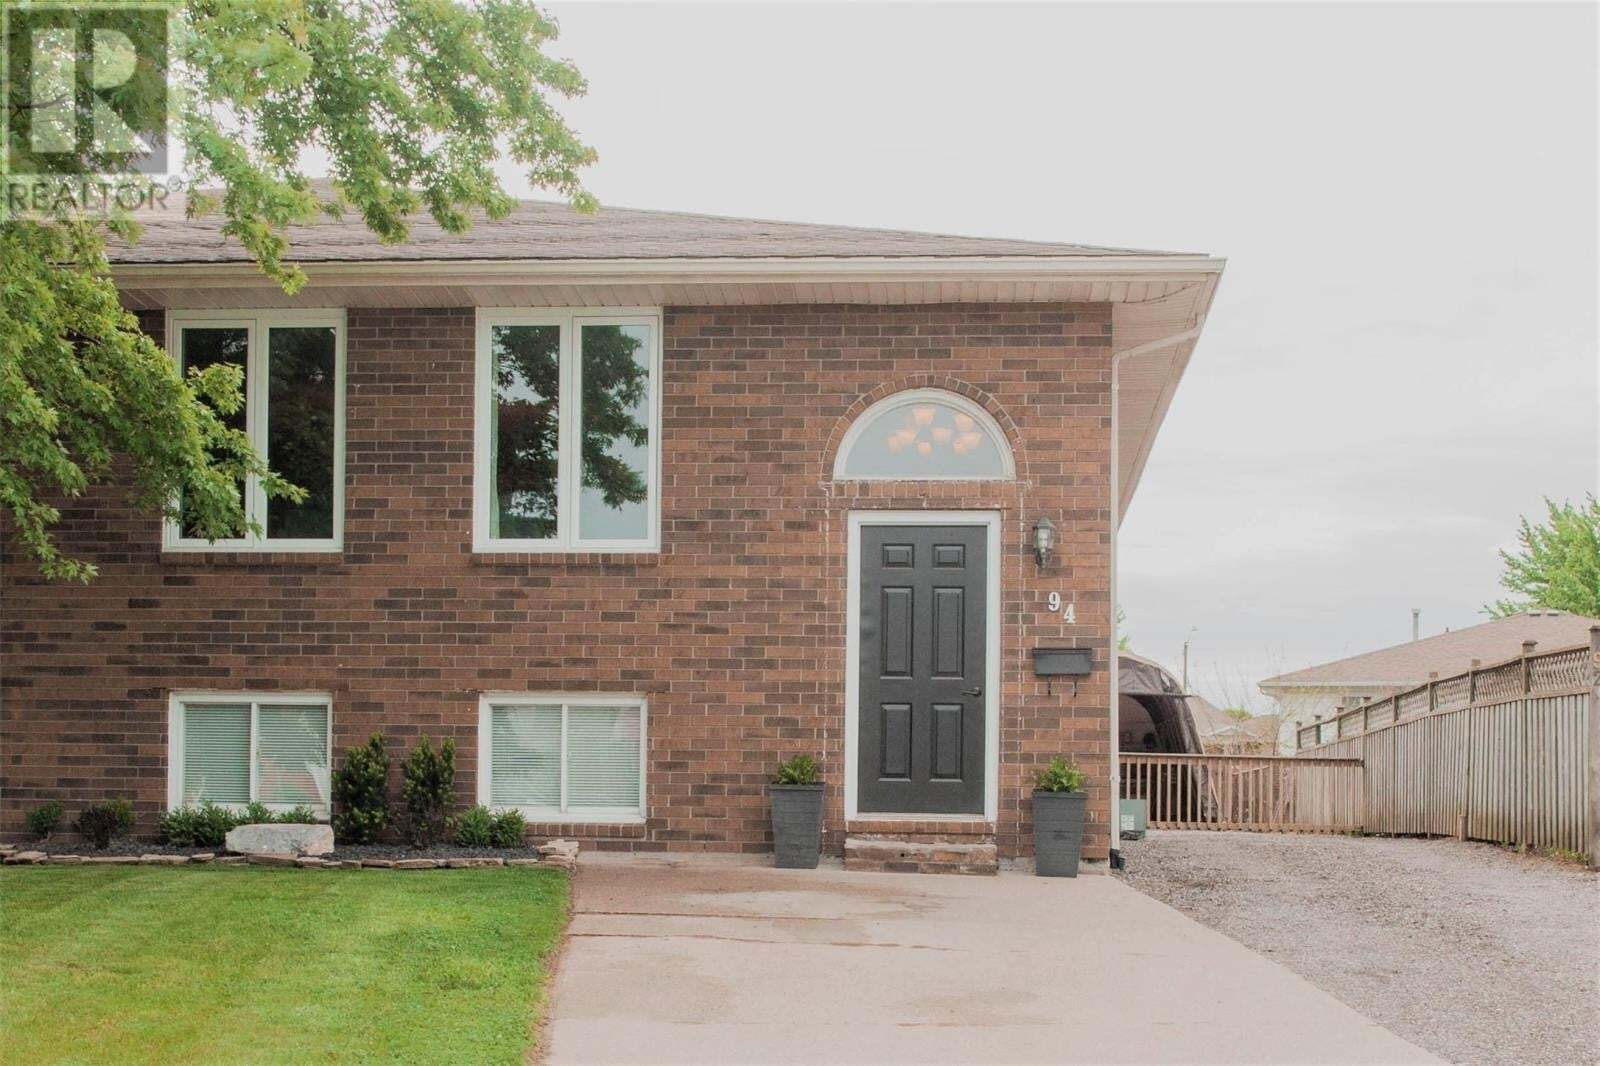 House for sale at 94 Satinwood Cres Leamington Ontario - MLS: 20005980